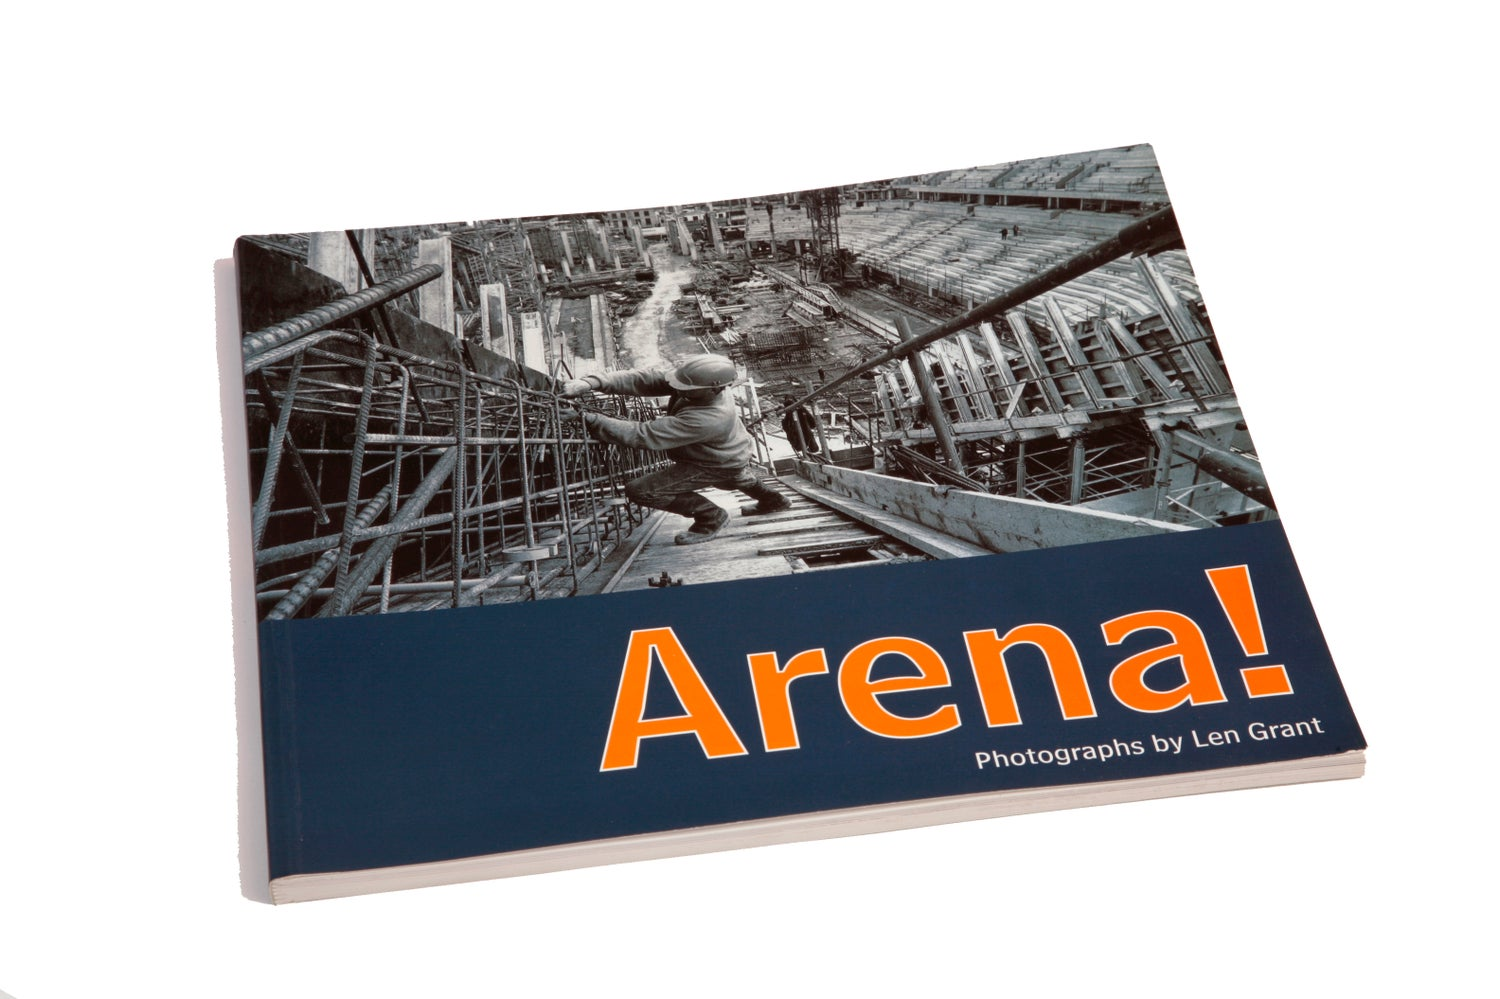 Image of Arena!